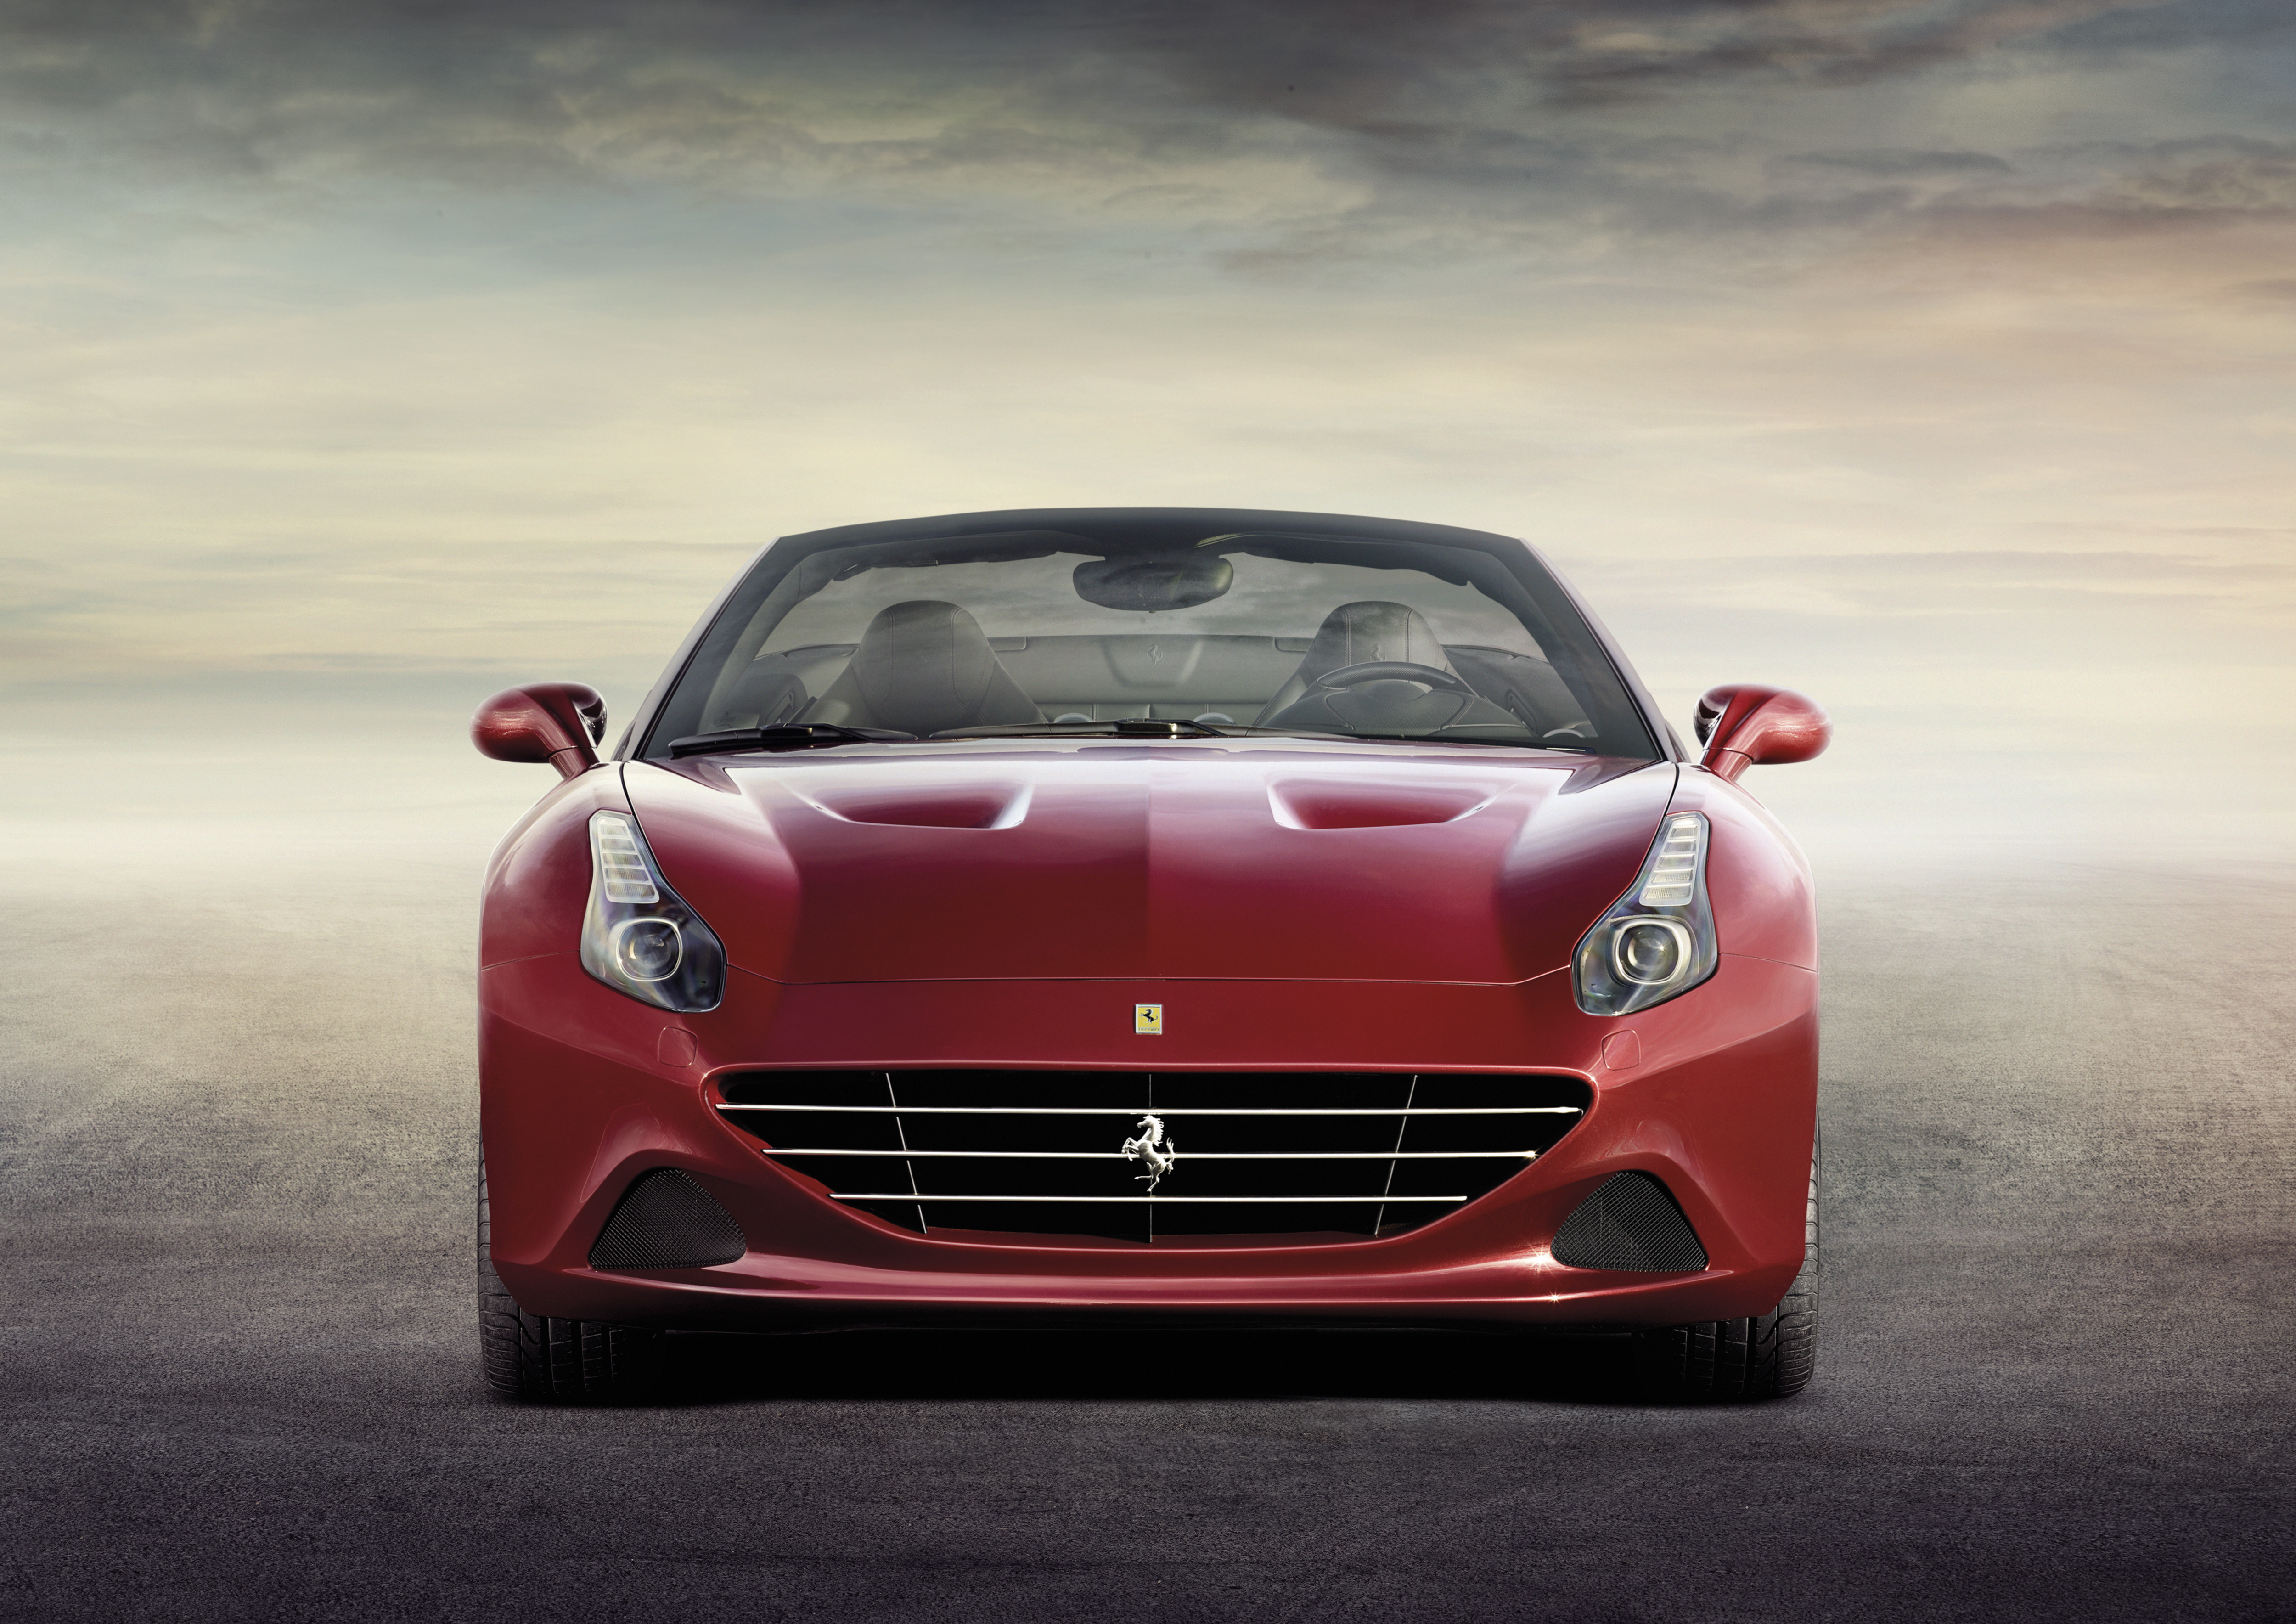 the cheap supercars ferrari california business cover average in can relatively according to yallacompare cost insurance on uae car performance for money high